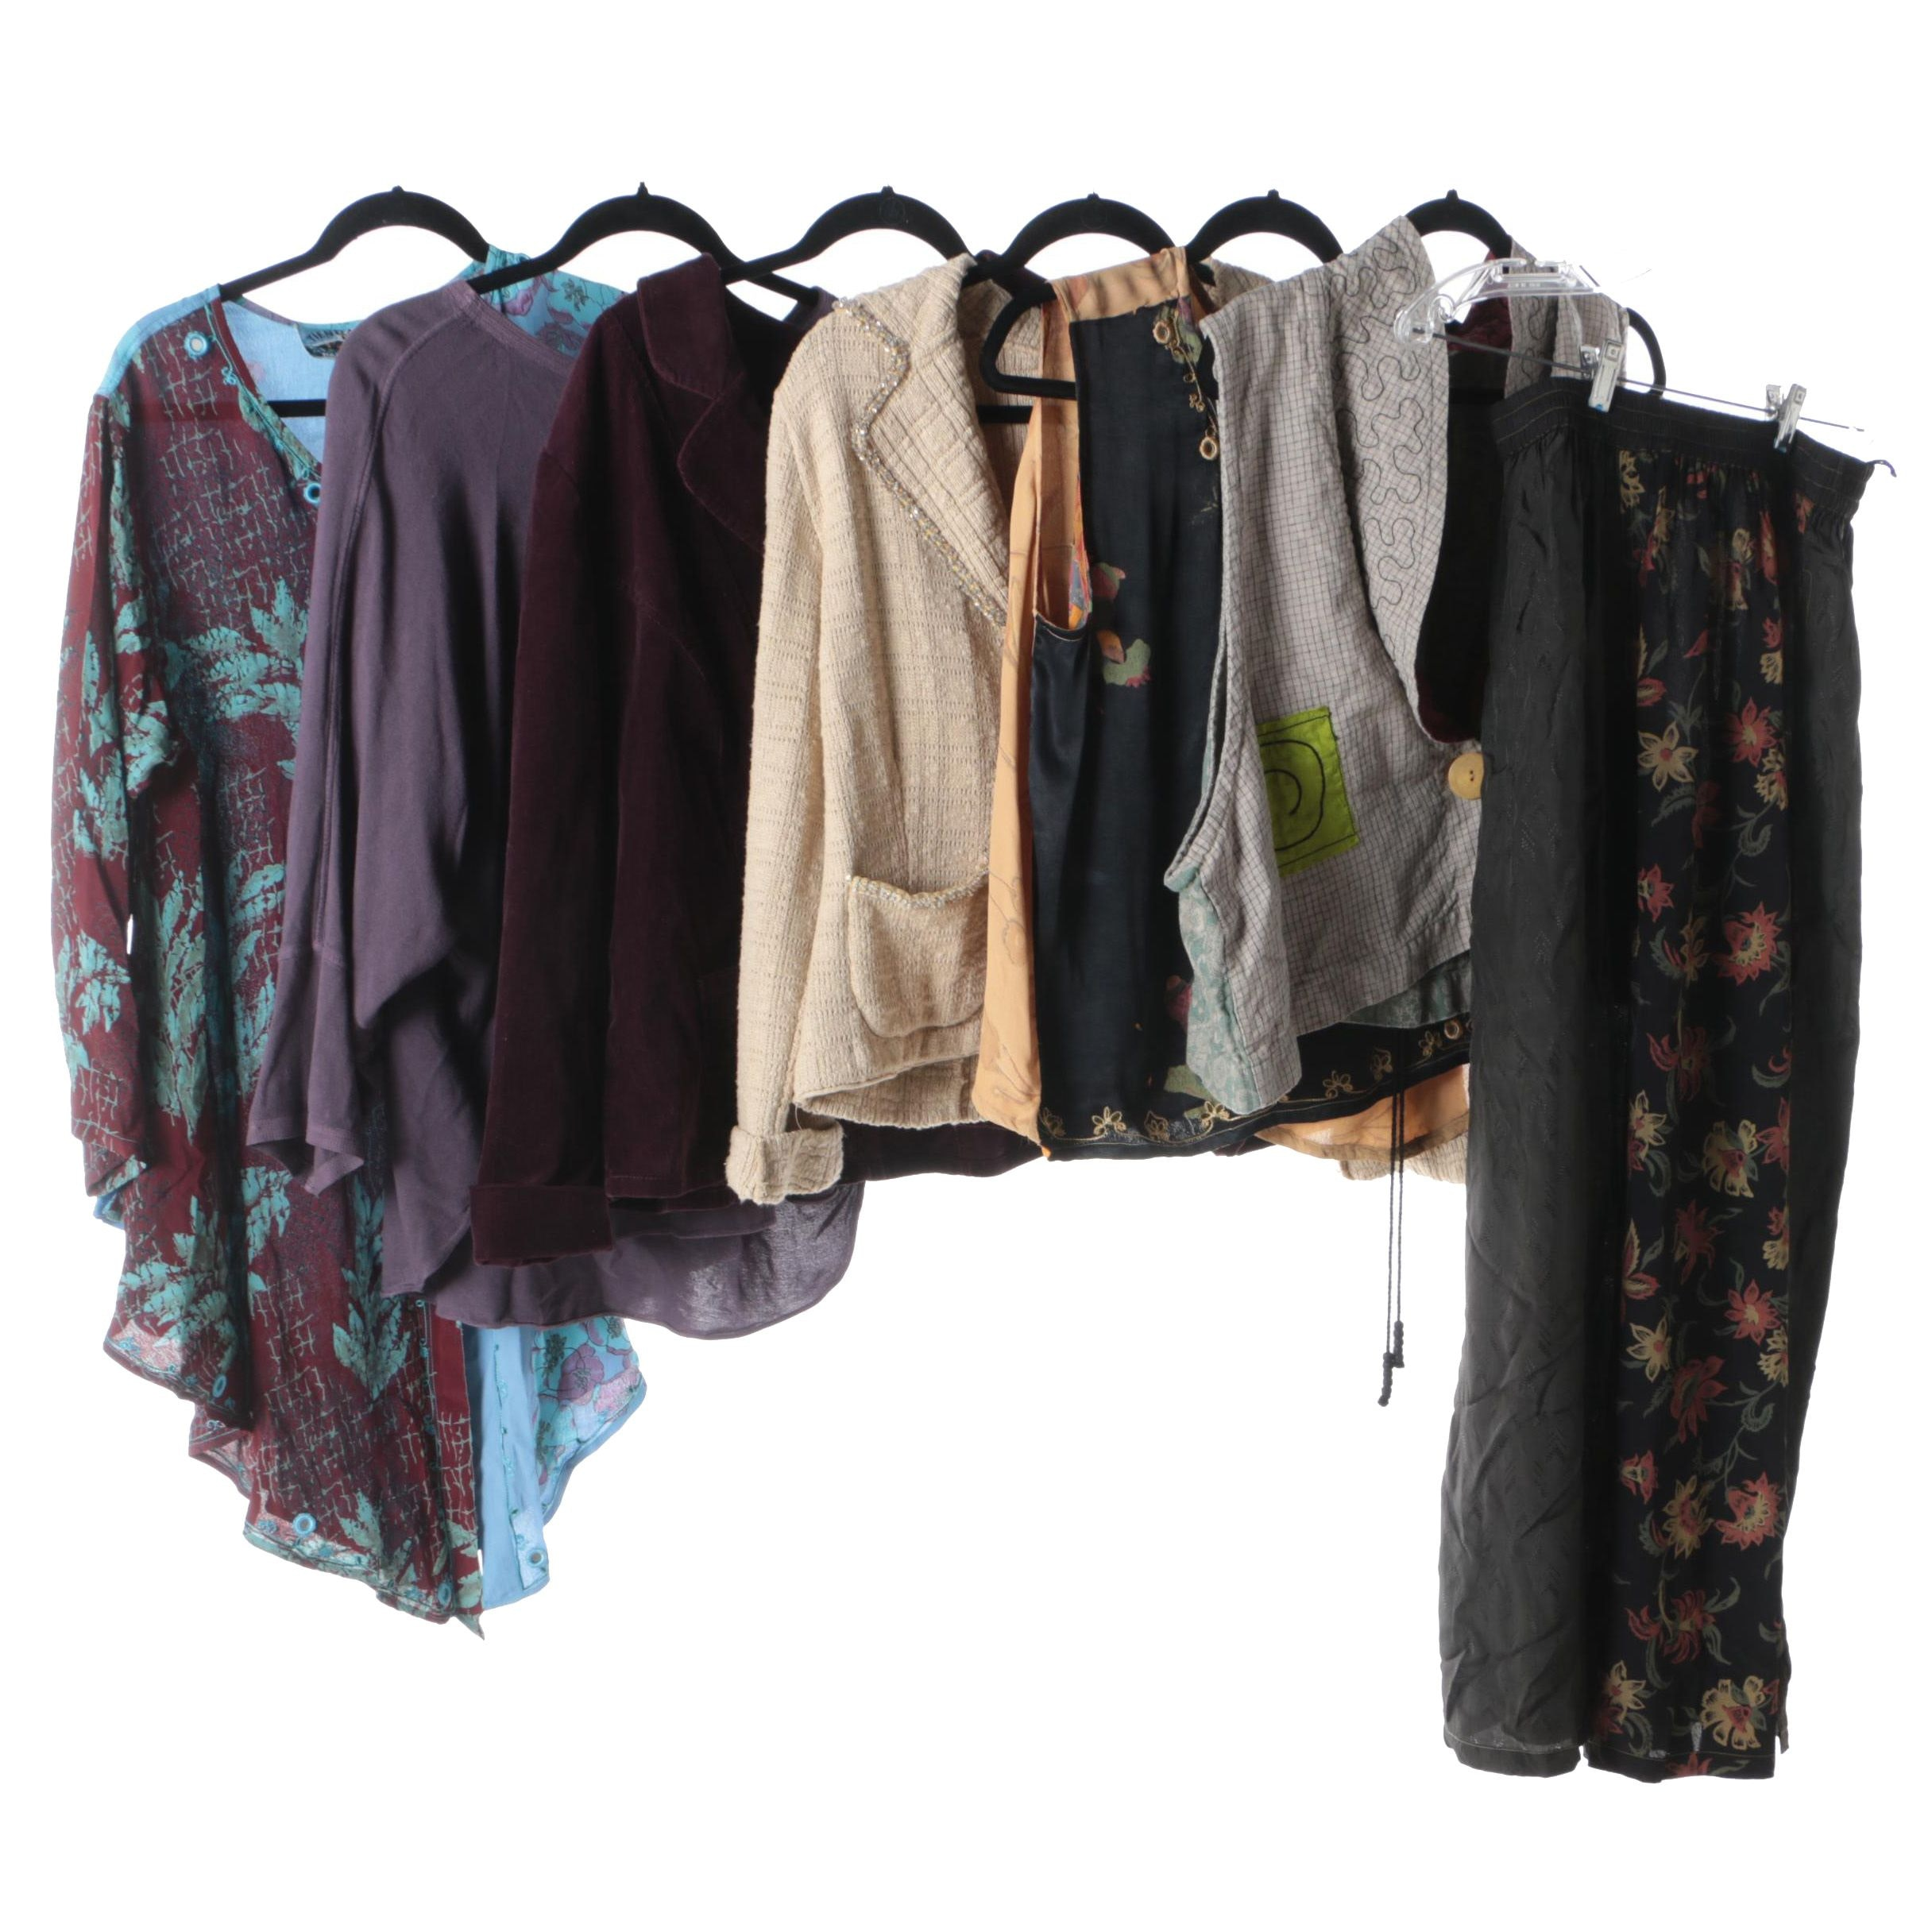 Women's Tops, Pants and Outerwear